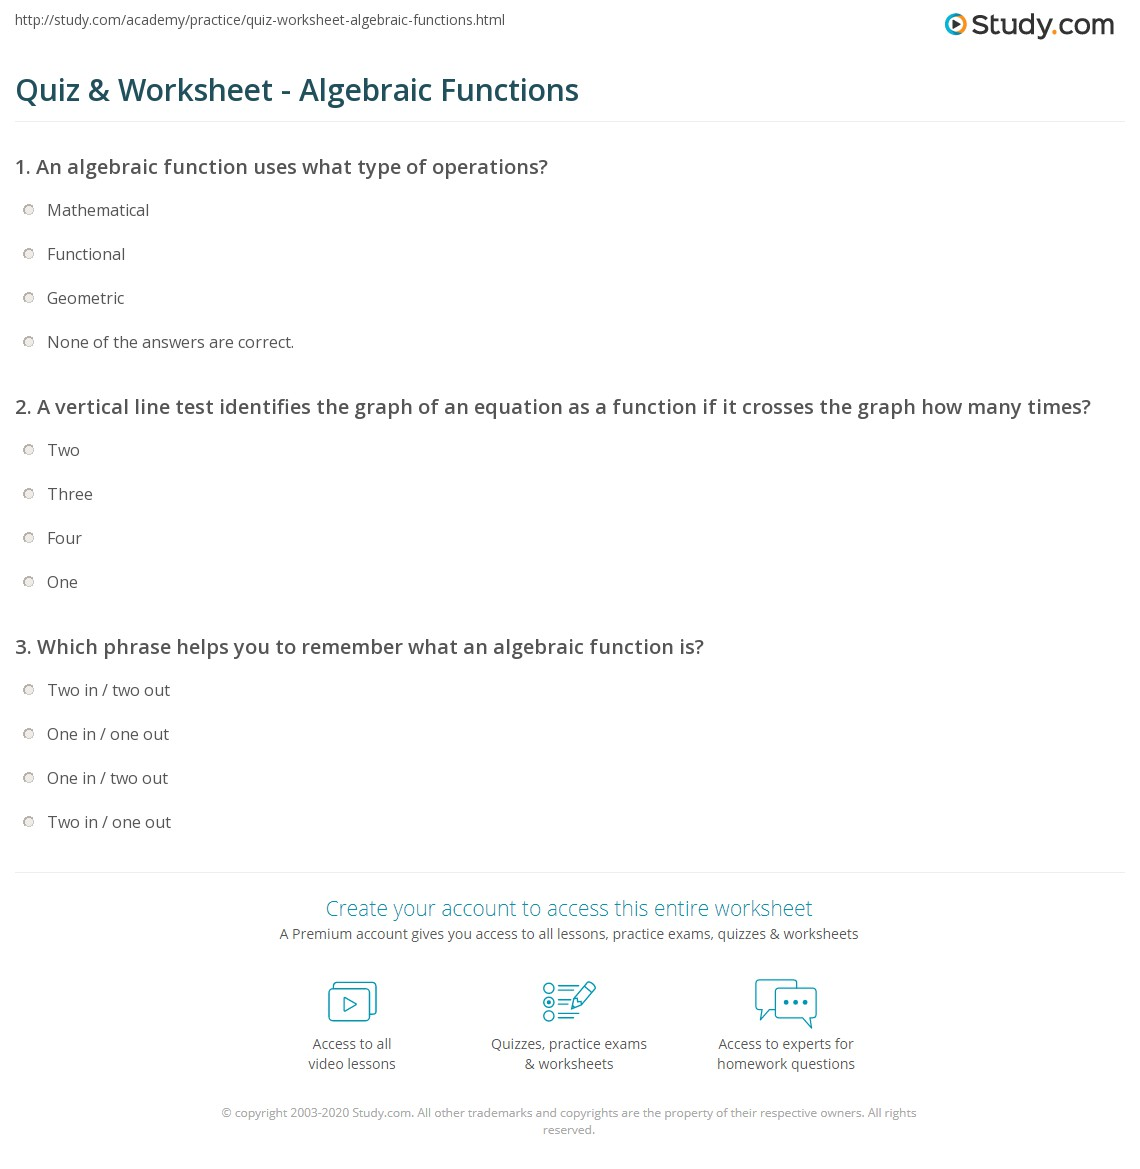 Worksheets Vertical Line Test Worksheet quiz worksheet algebraic functions study com a vertical line test identifies the graph of an equation as function if it crosses how many times